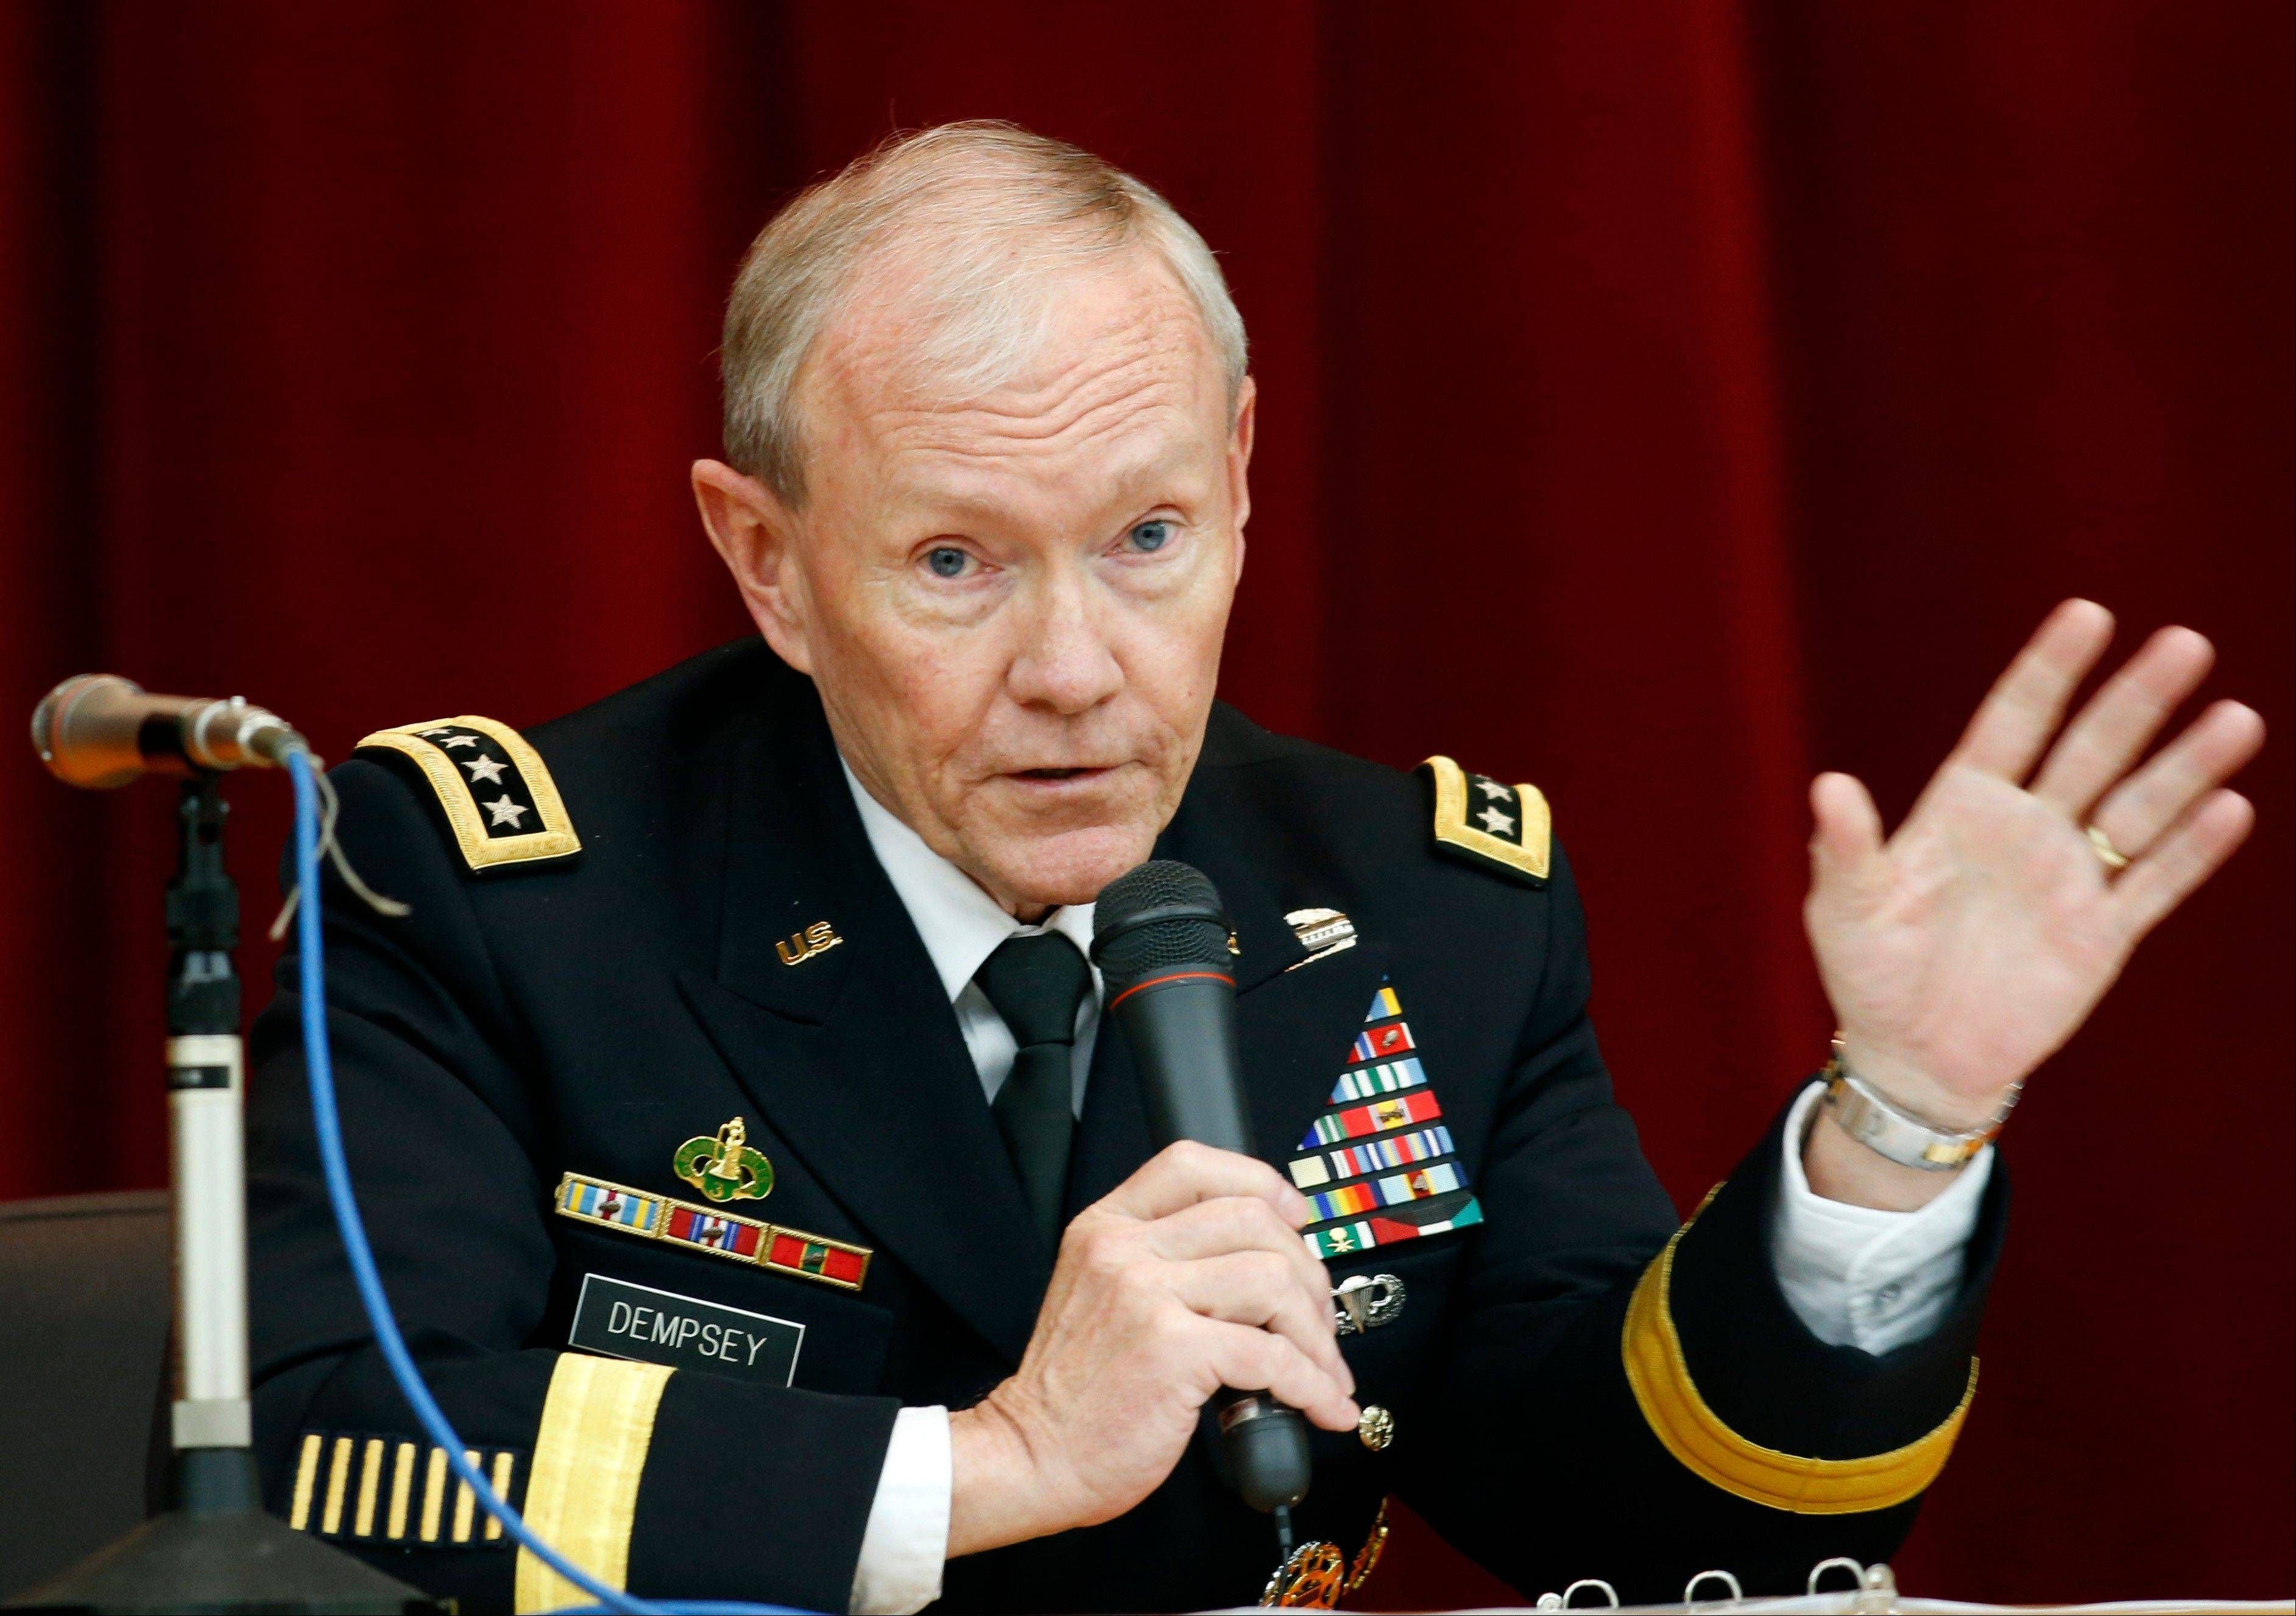 Allegations of sexual assault in the military have triggered outrage from local commanders to Capitol Hill and the Oval Office. �We�re losing the confidence of the women who serve that we can solve this problem,� the chairman of the Joint Chiefs of Staff, Army Gen. Martin Dempsey, said Wednesday.